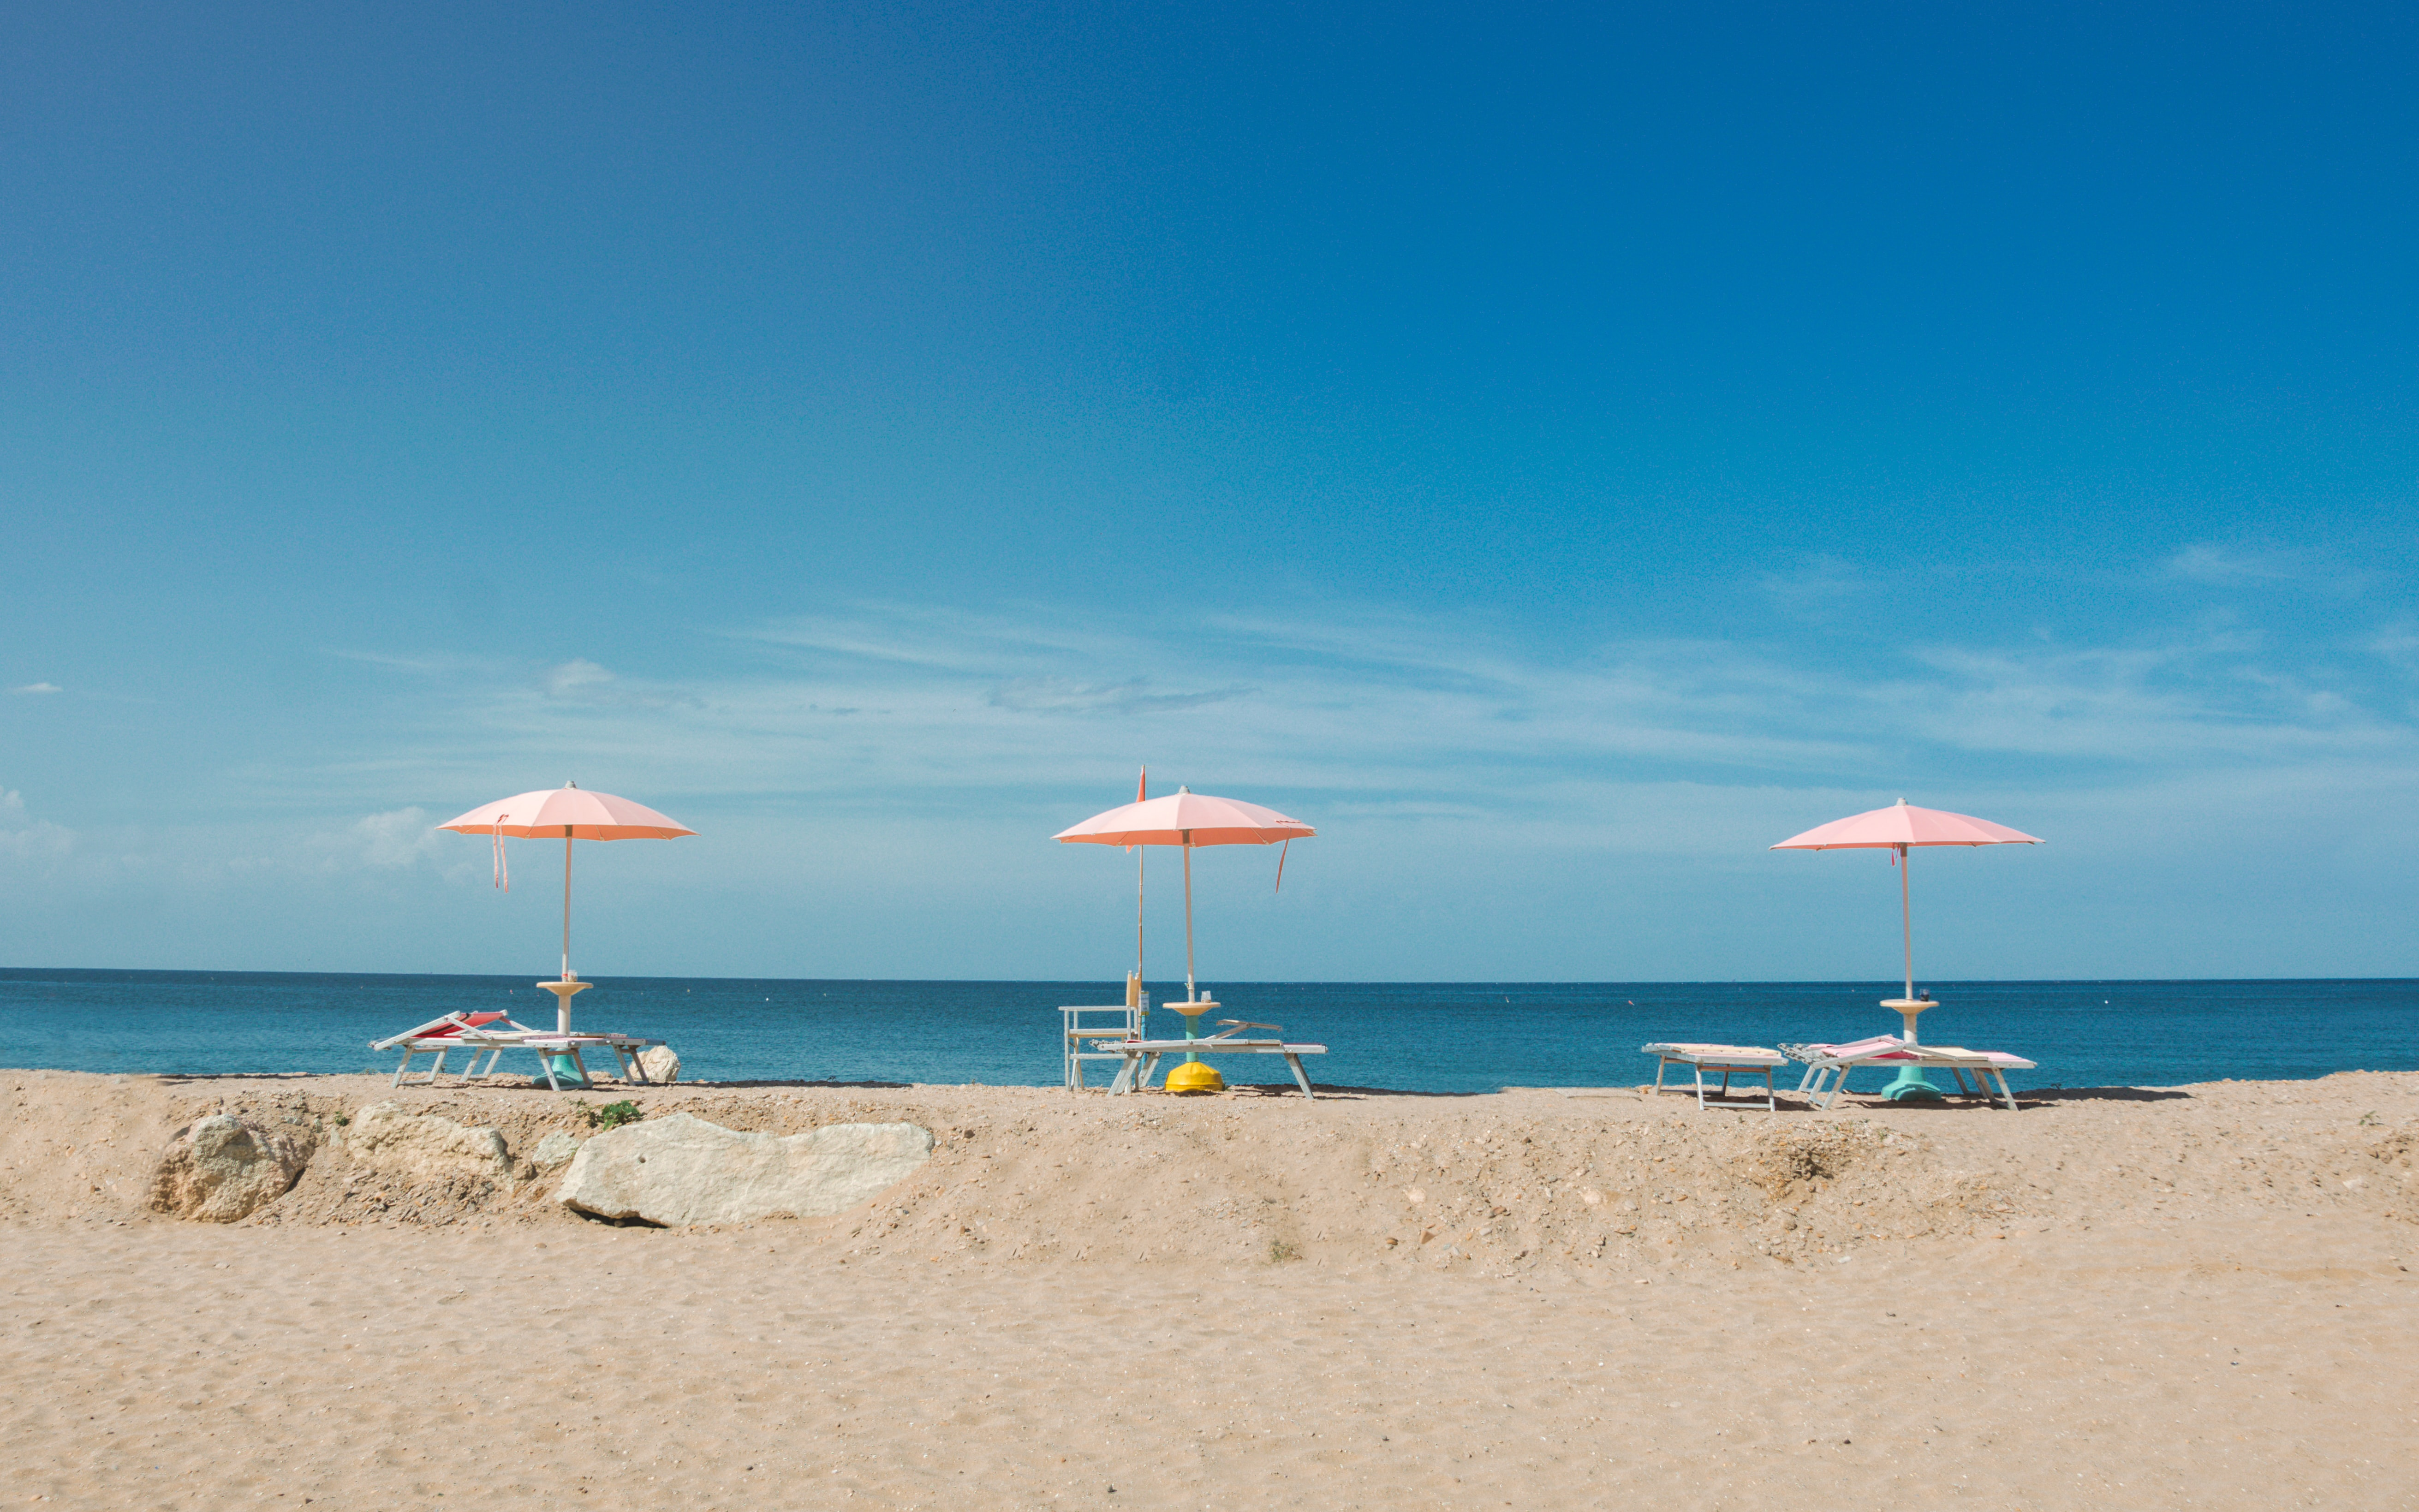 Three pink umbrellas attached to deck chairs on an empty beach